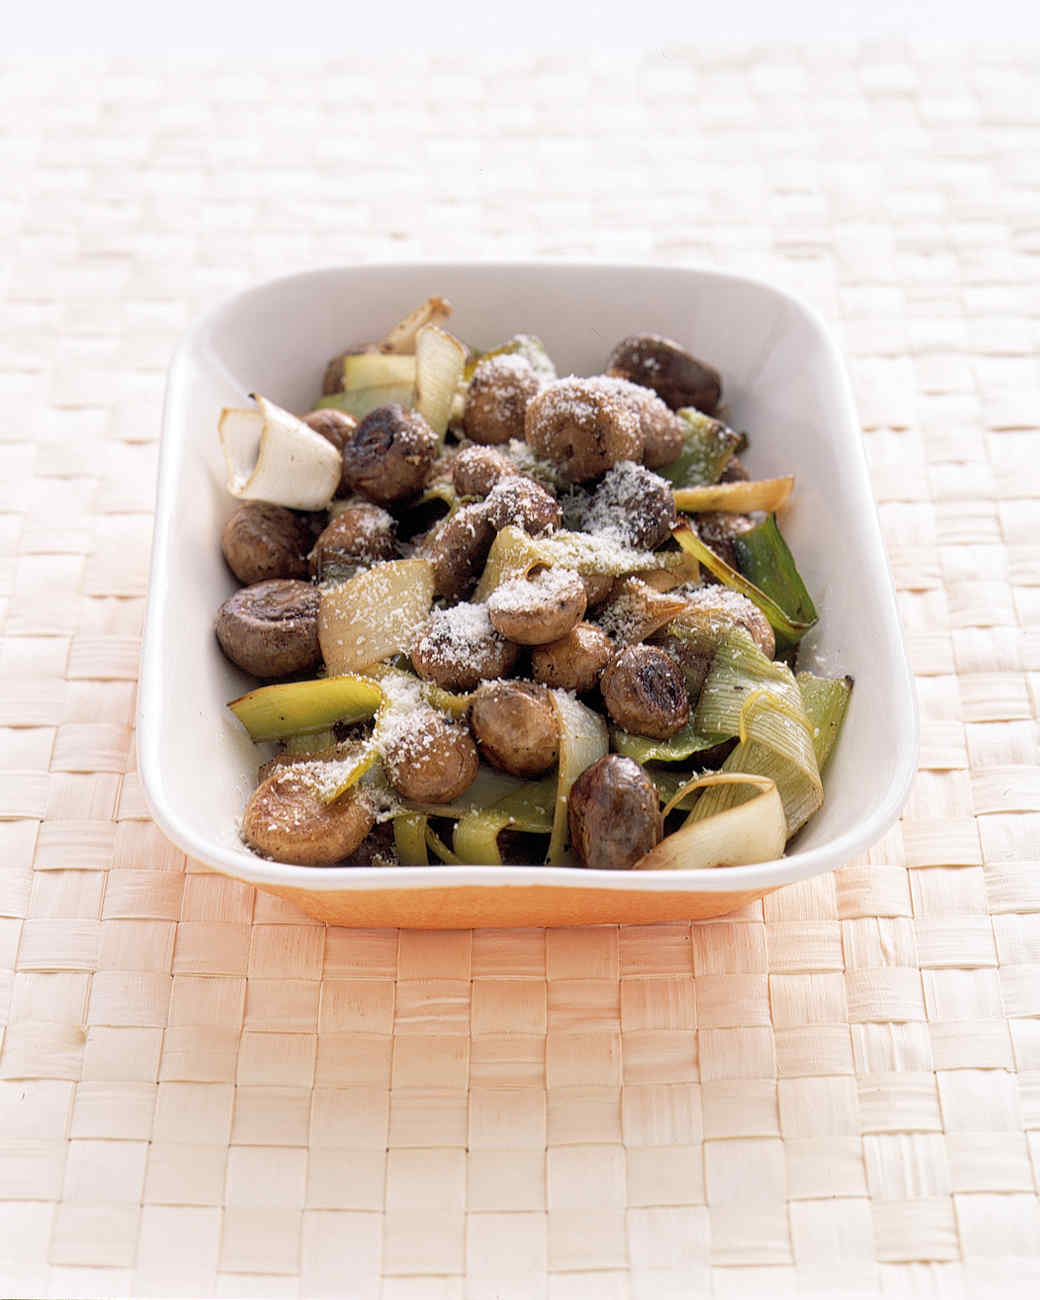 Grilled Mushrooms and Leeks